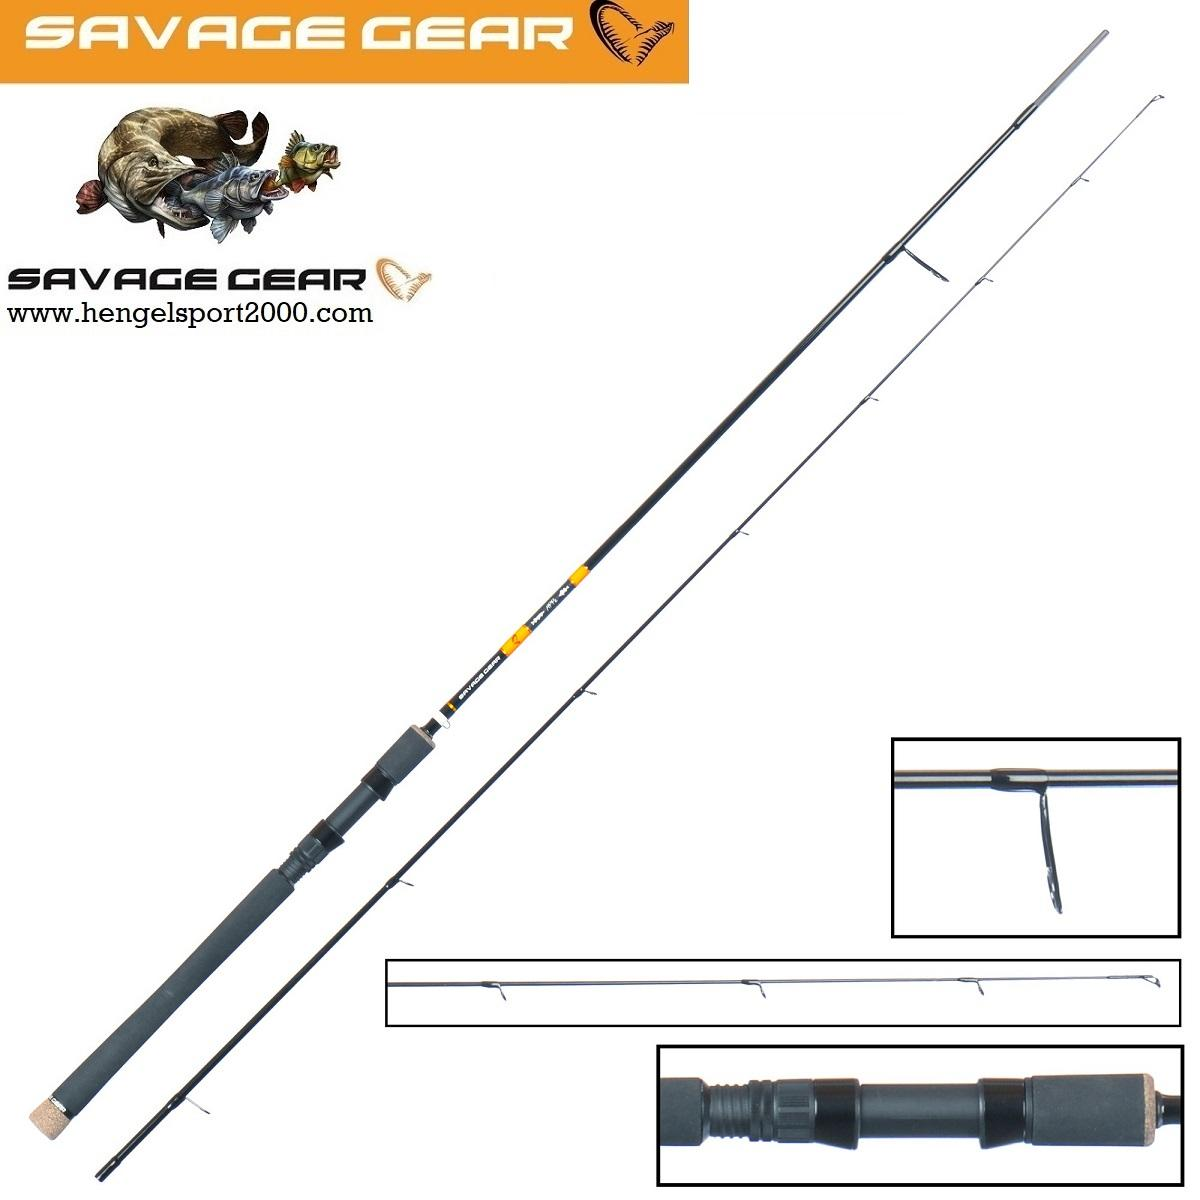 Savage Gear Multi Purpose Predator2 Spin 221 cm 12 - 35 gram